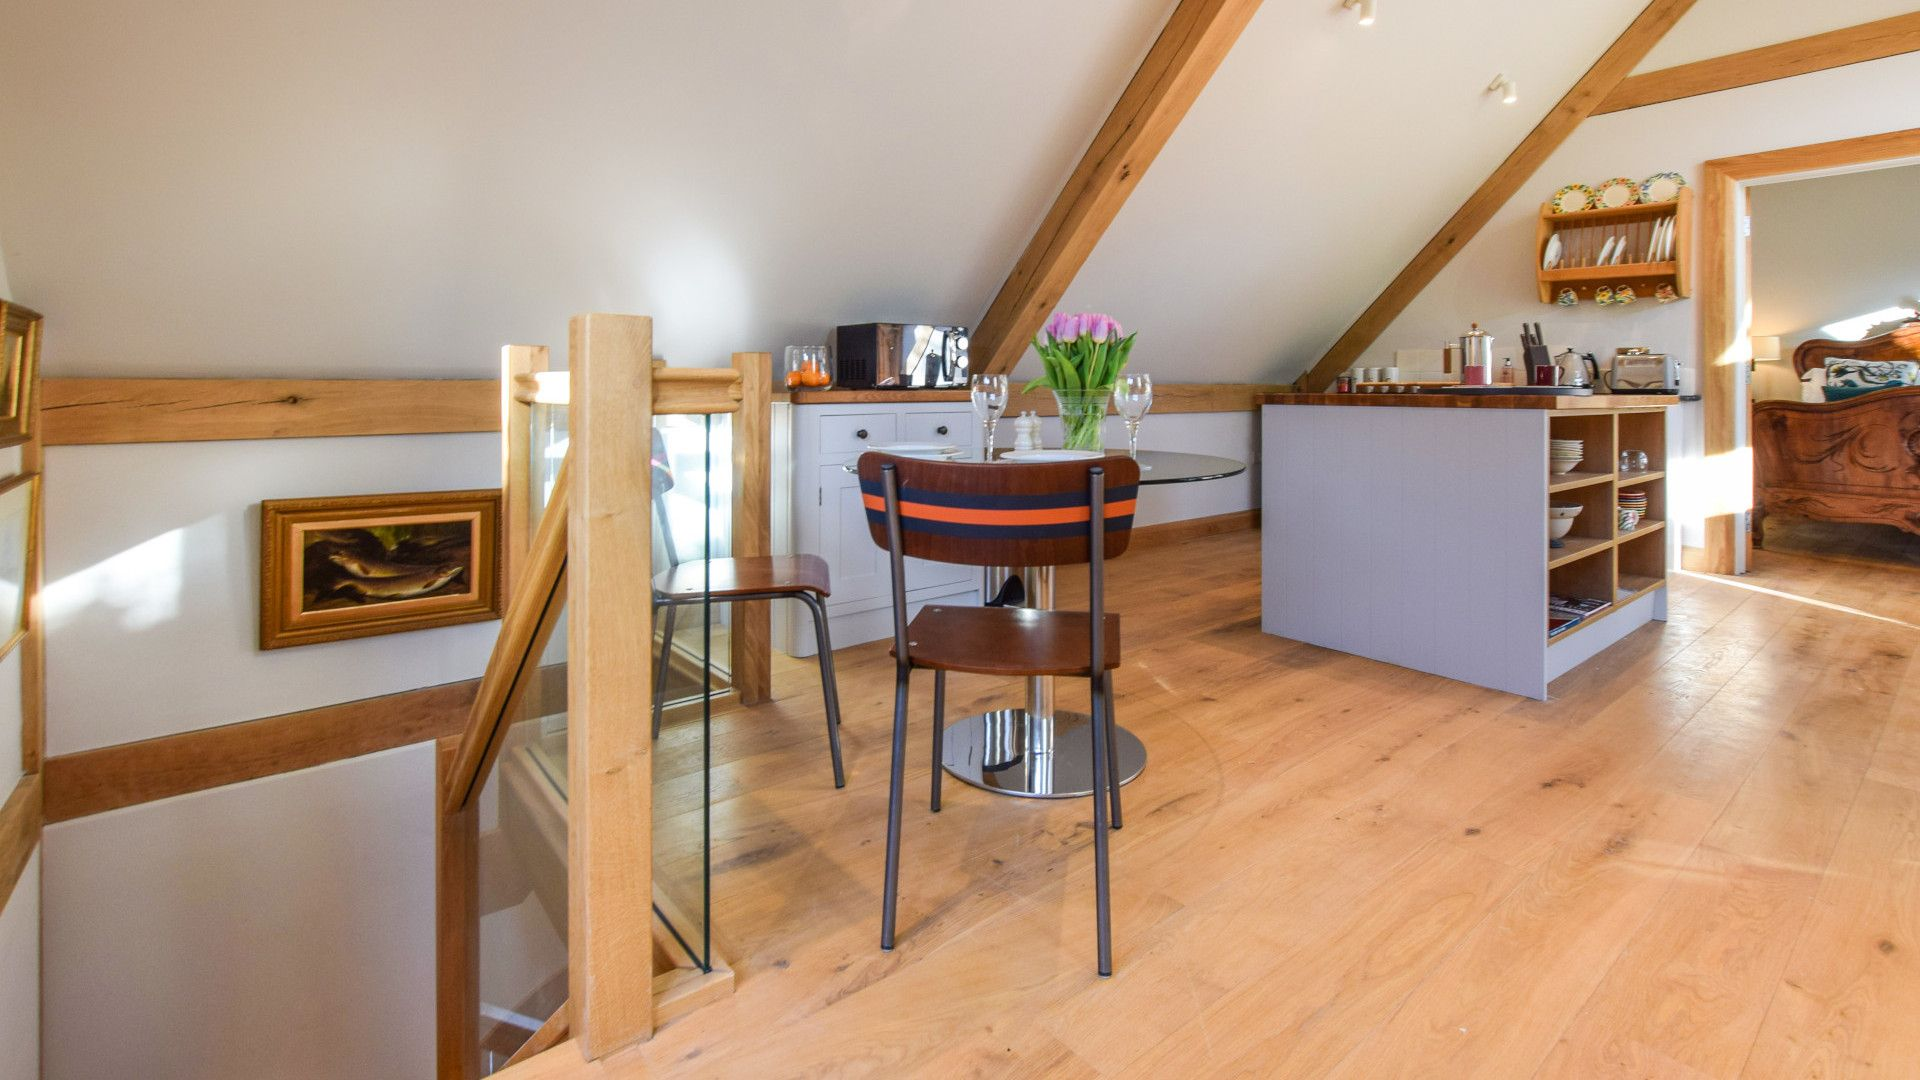 Kitchen and dining areas, Sycamore, Bolthole Retreats